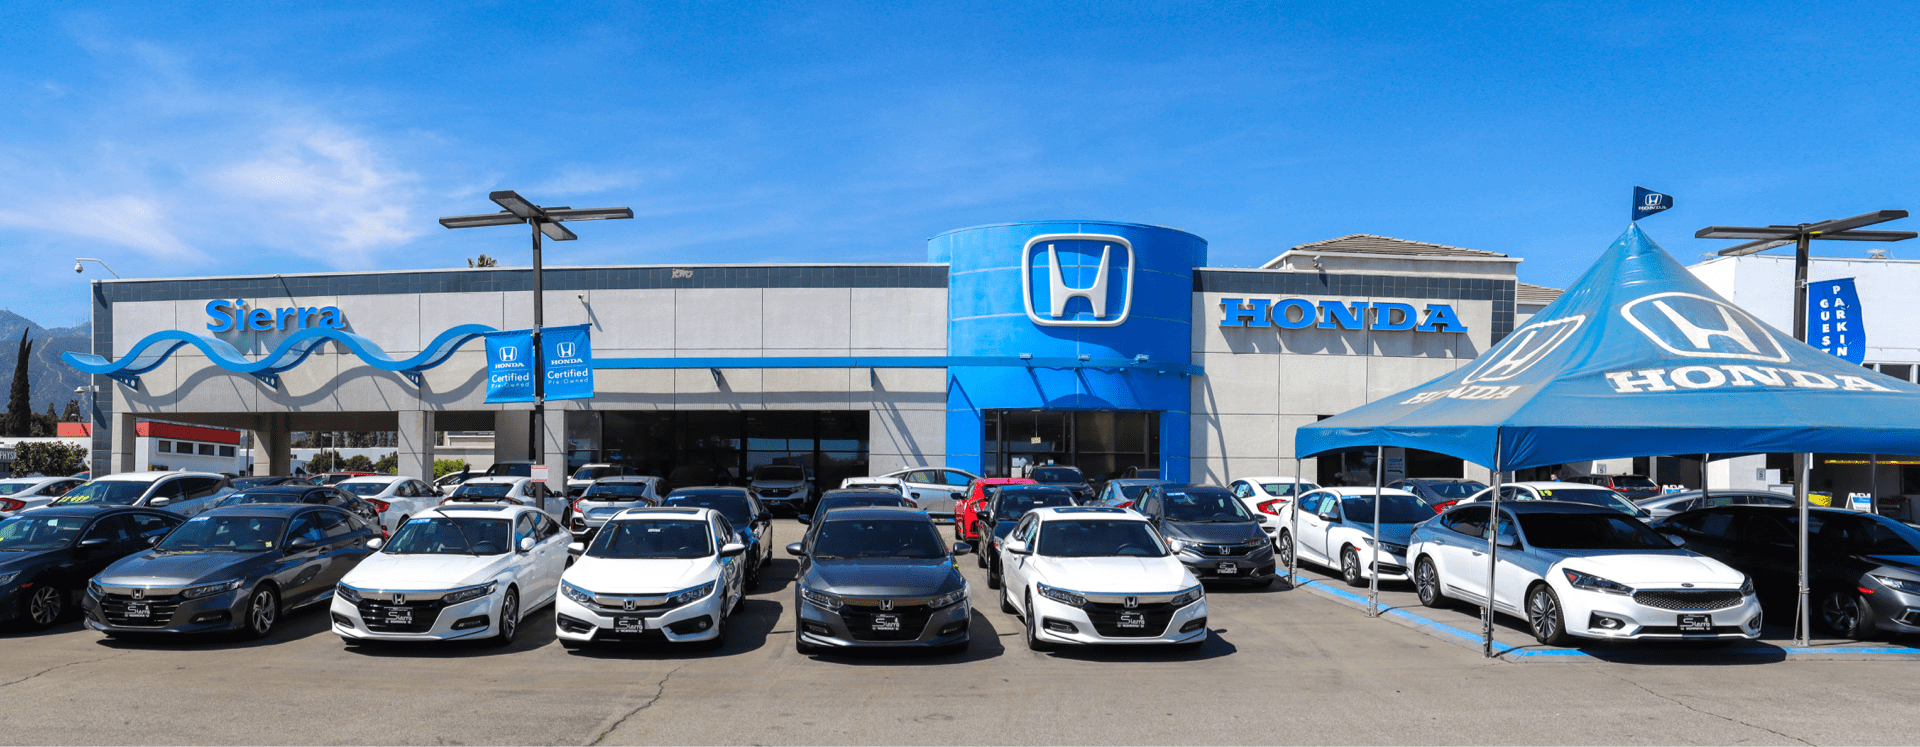 An exterior shot of a Honda dealership during the day.